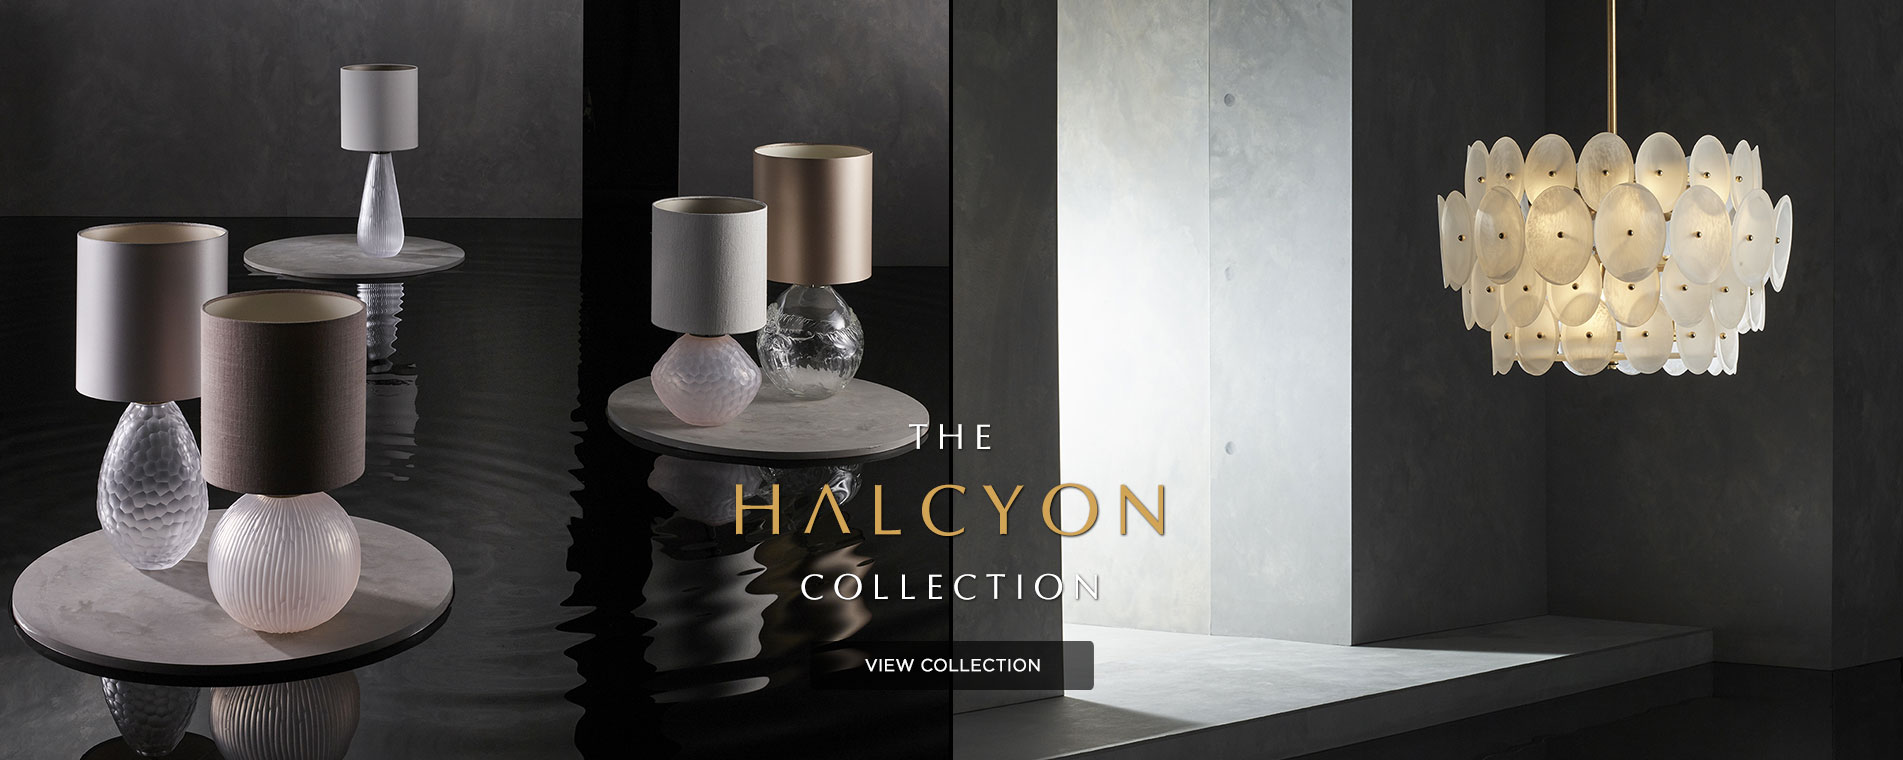 The Halcyon Collection